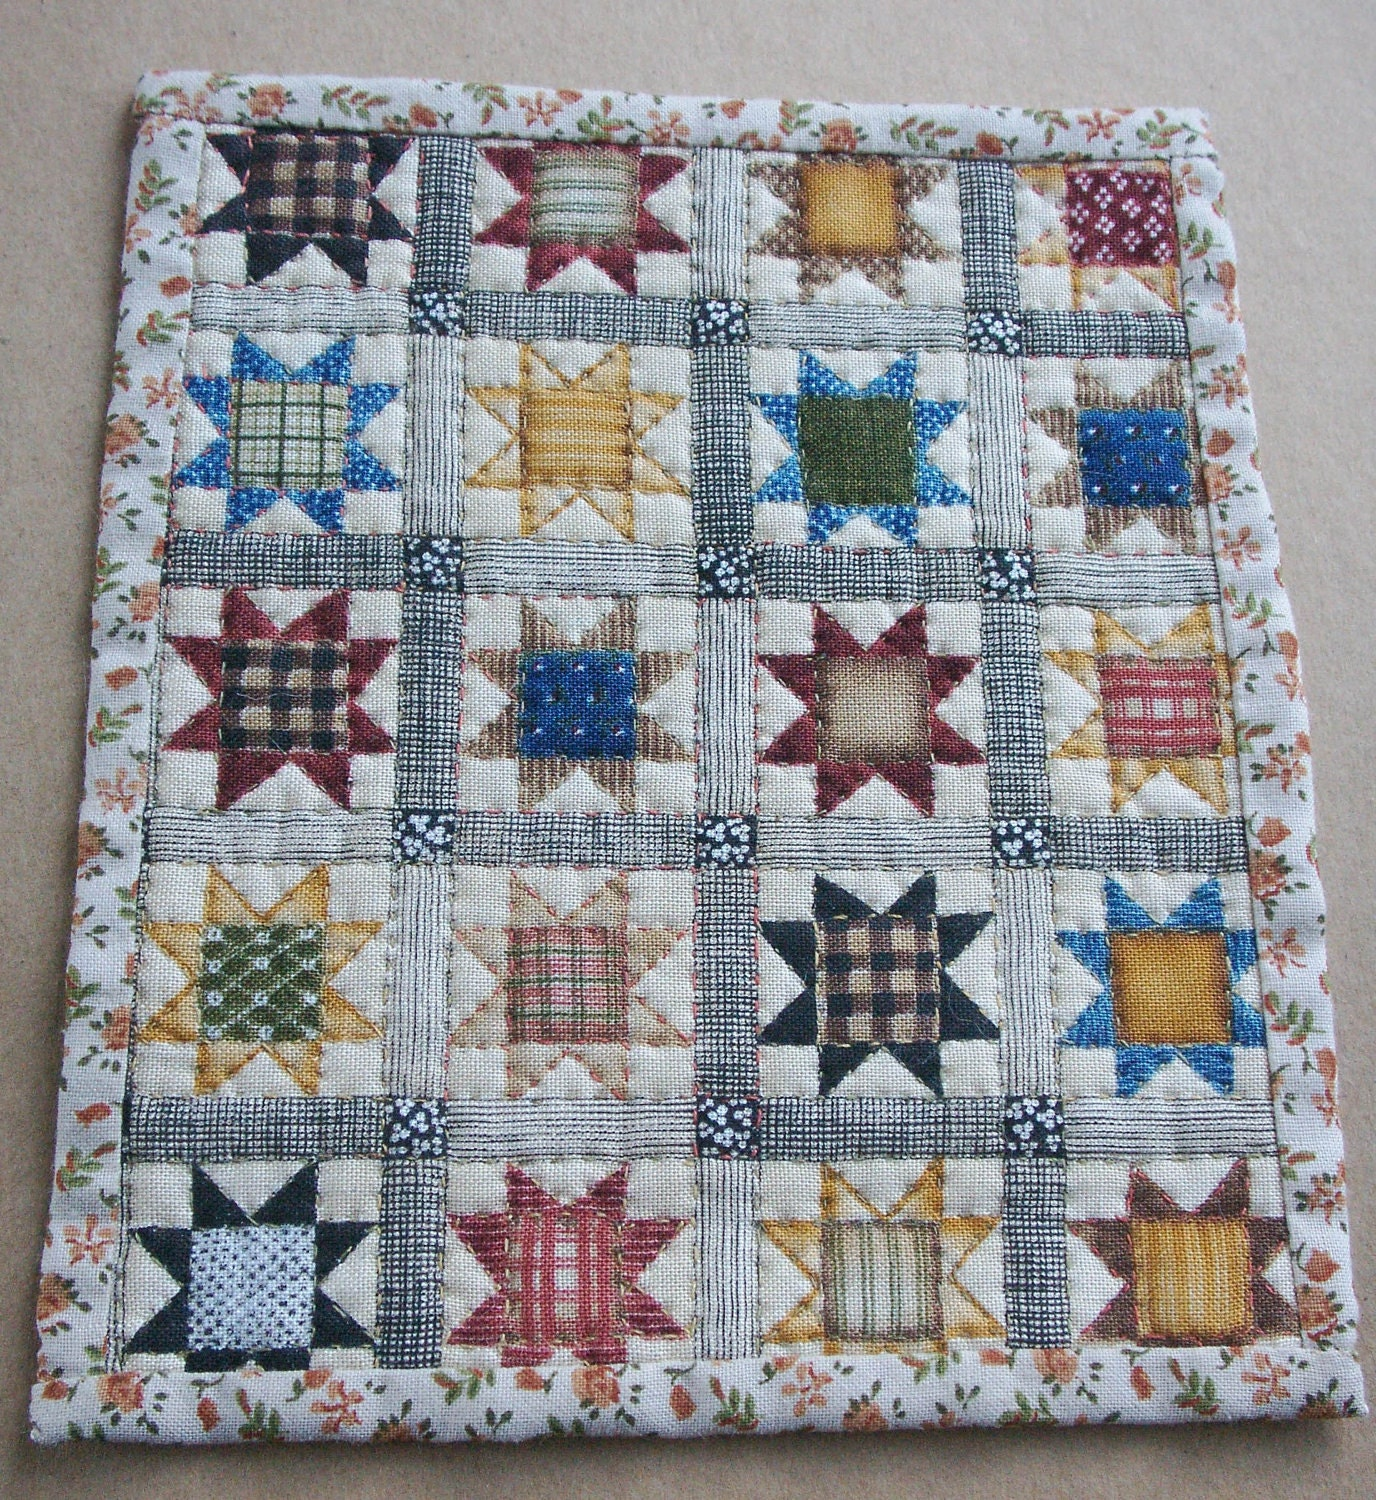 Dolls House Miniature Patchwork Quilt By Cherrycroftcrafts